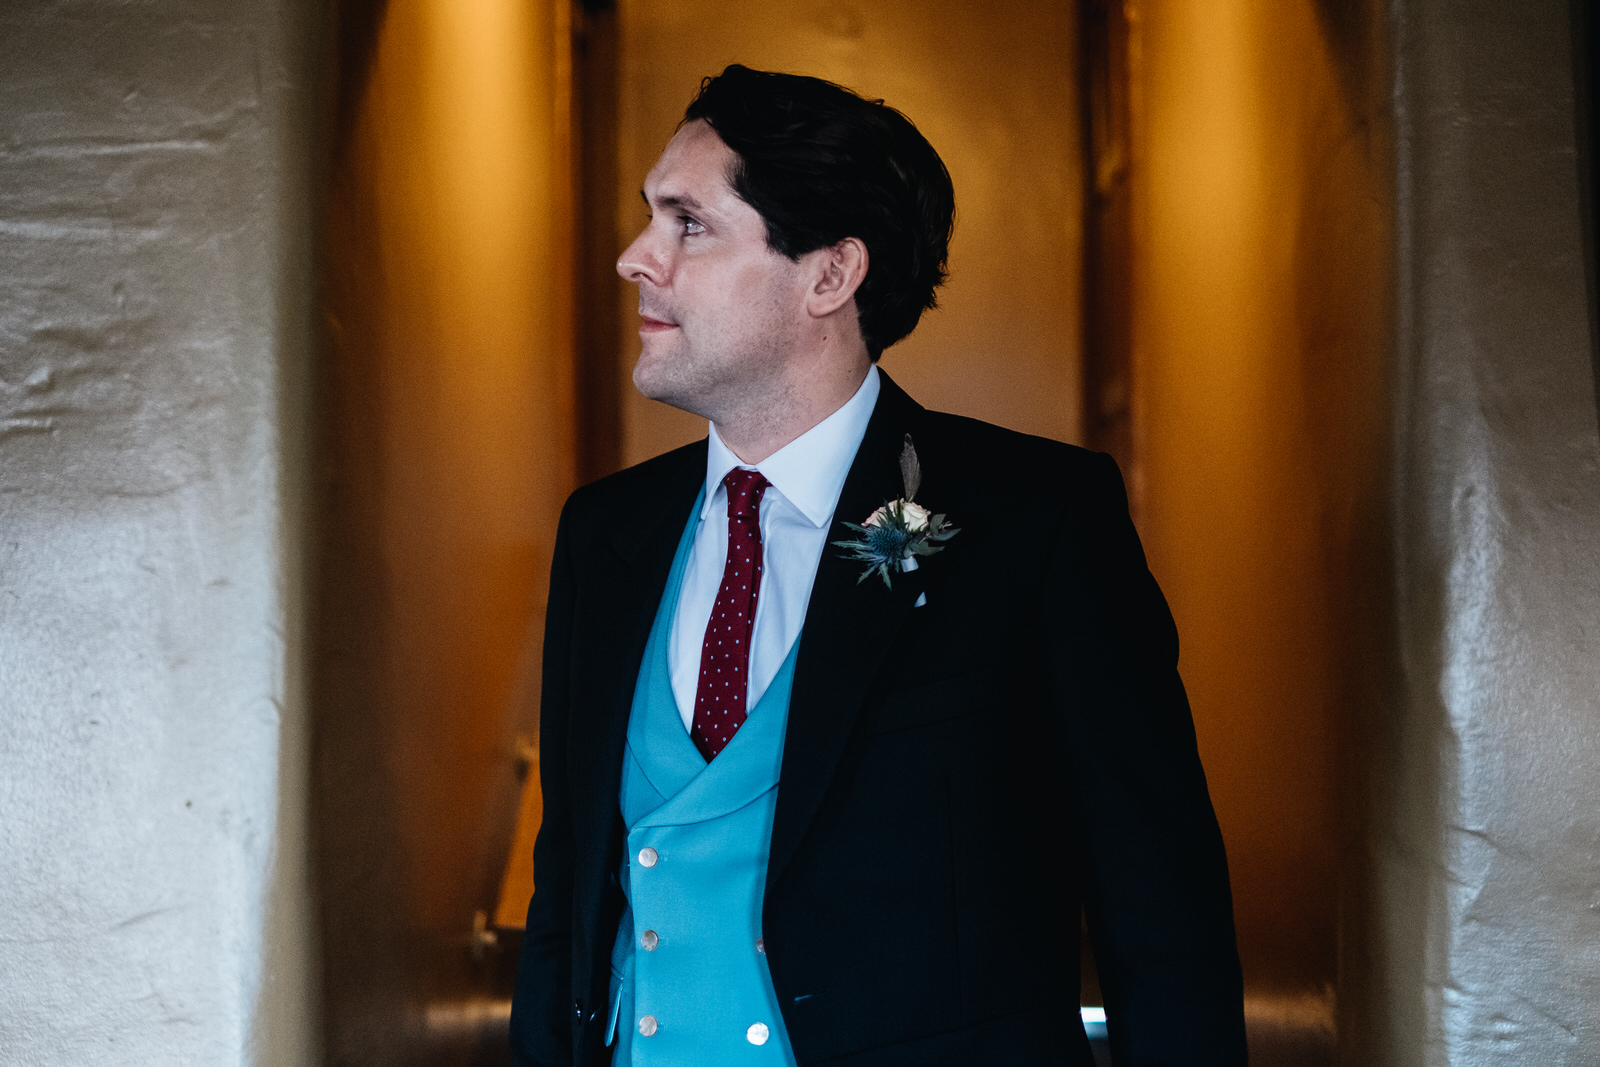 A groom stands by an oragne light which contrasts with his blue waistcoat.